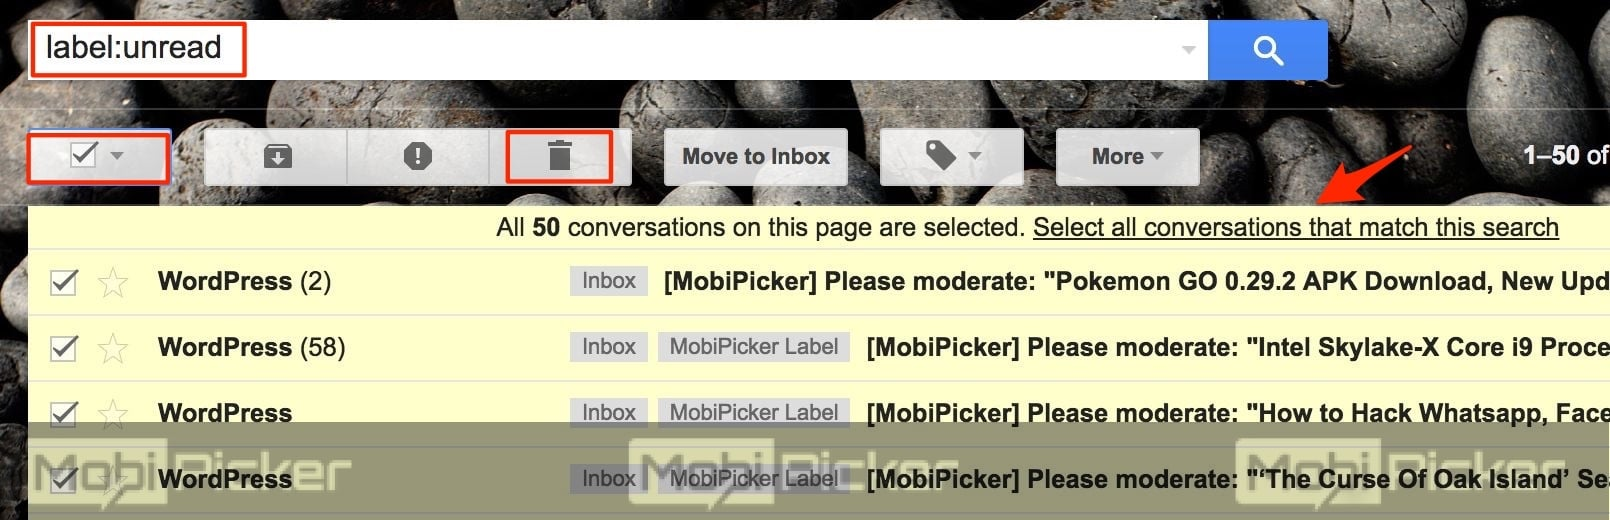 how to delete all unread emails in gmail